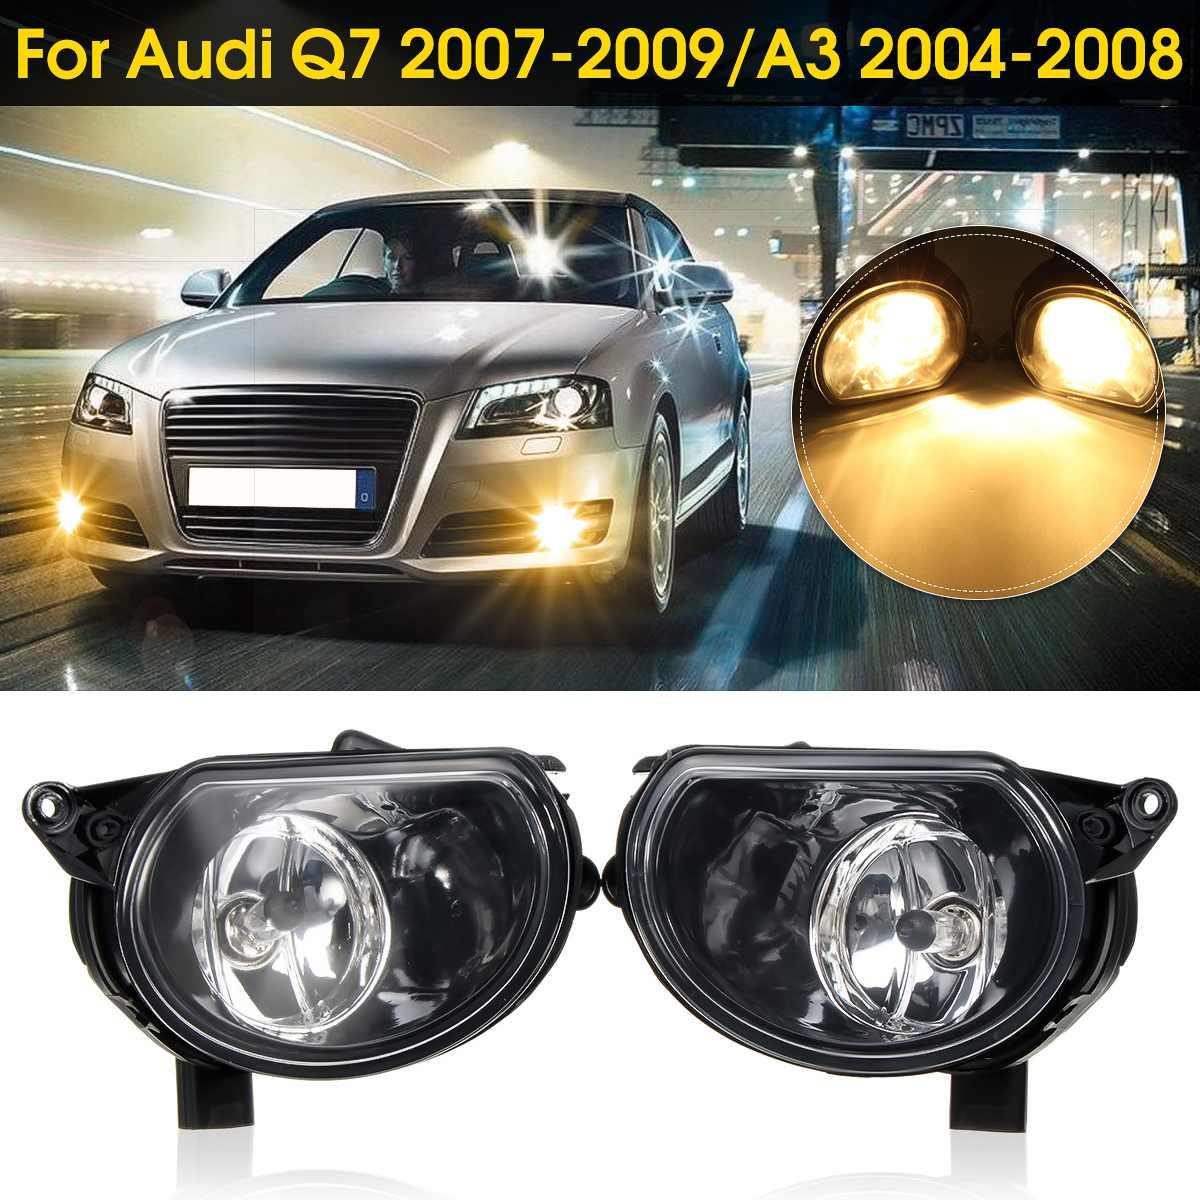 Pair Front Bumper Halogen Clean Fog Lamps Foglights For